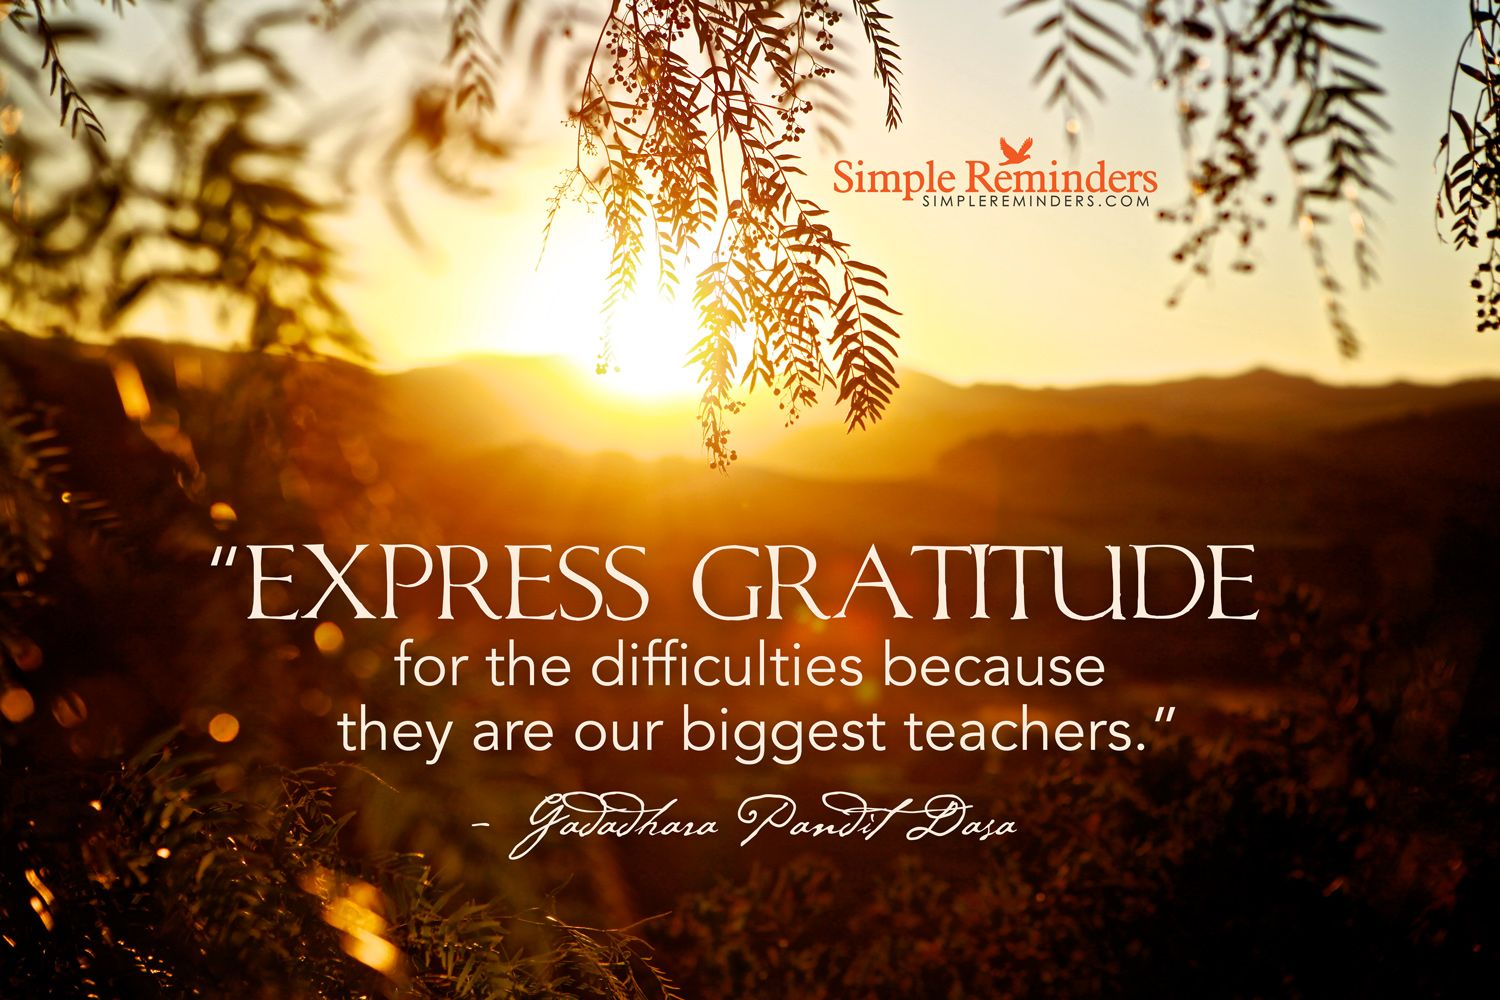 Express gratitude for the difficulties because they are our biggest teachers. ~Gadadhara Pandit Dasa  #values #gratitude #thankful #difficulties #lesson #teachers #life  @SIMPLE Comunicación Comunicación Reminders